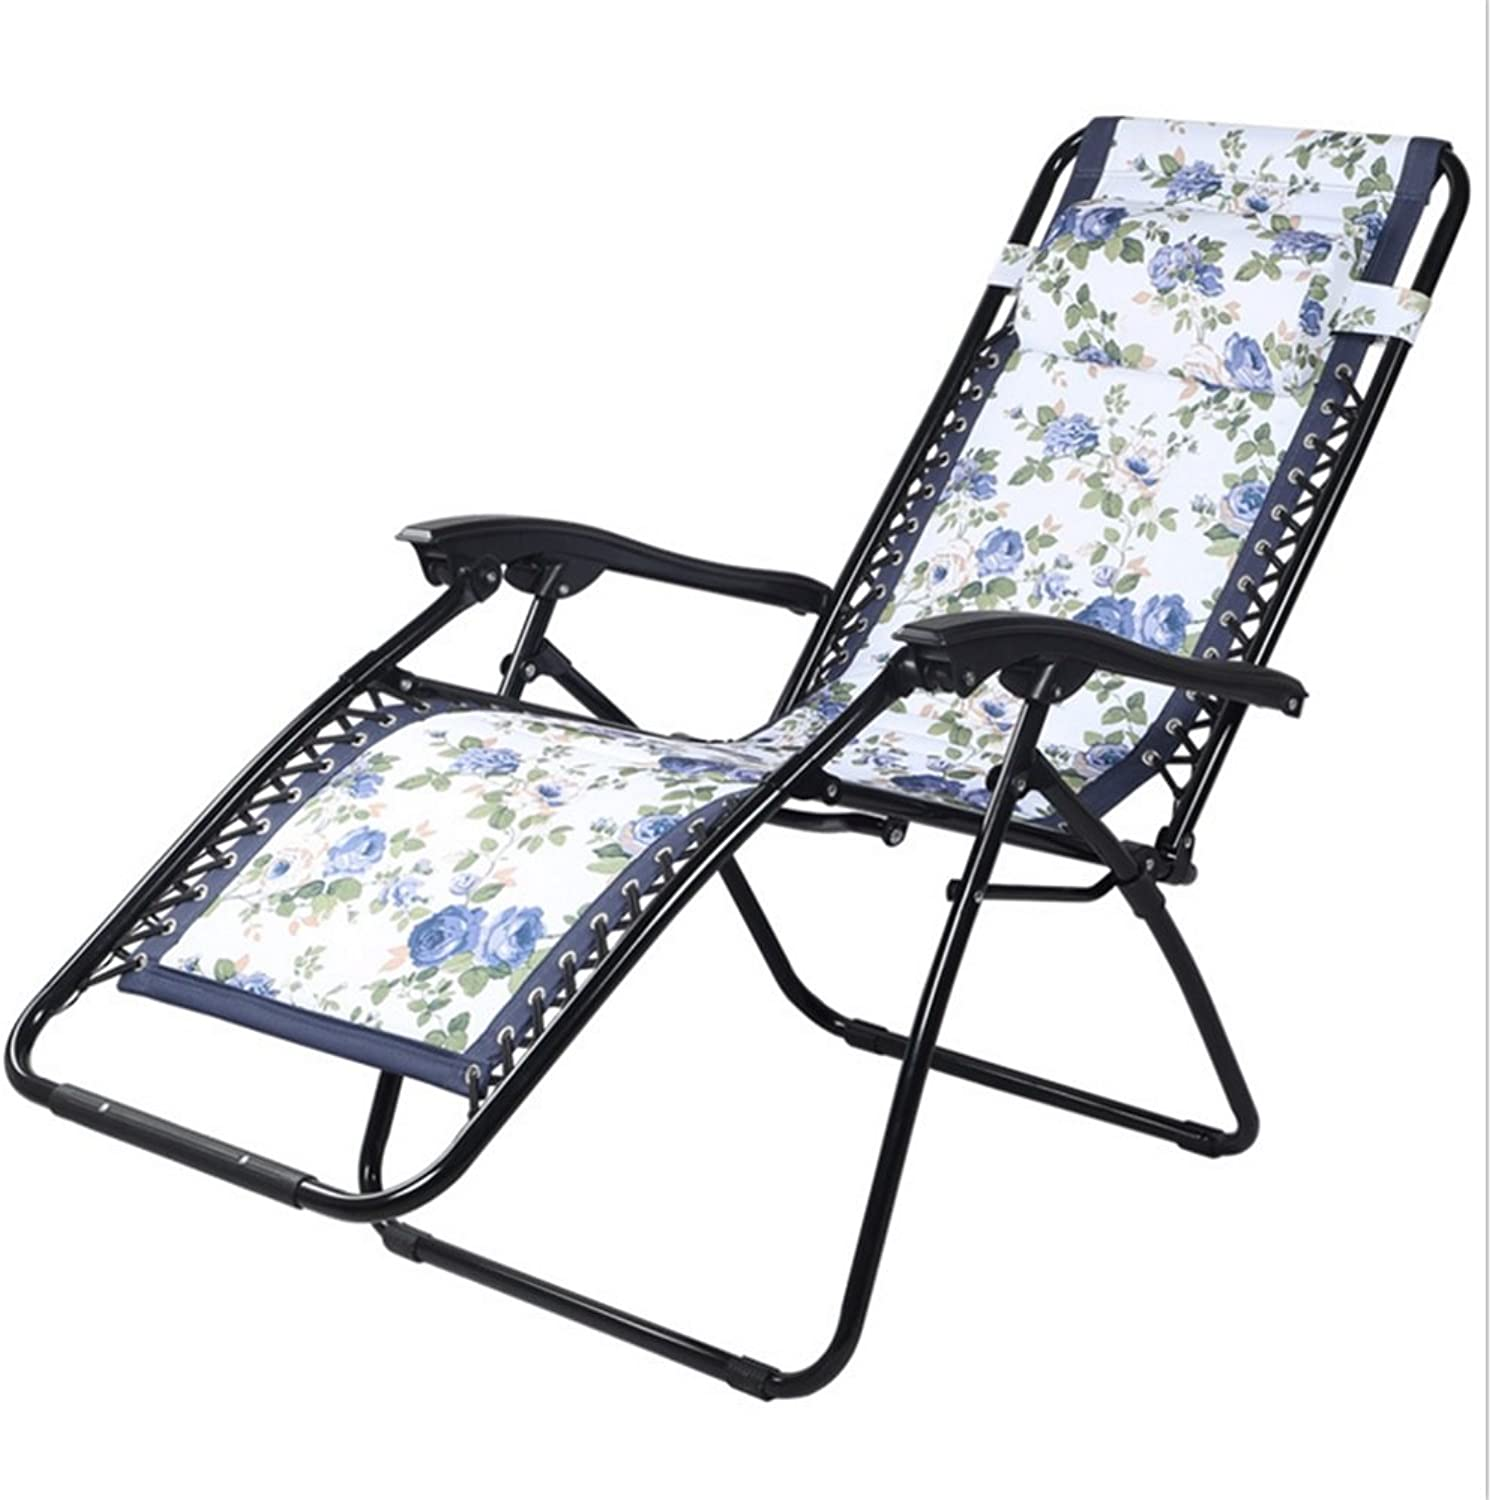 Outdoor Folding Chair 22 Round Couch Chair Folding Lunch Chair Outdoor Beach Chair Leisure Chair Outdoor Ralph Horse Chair